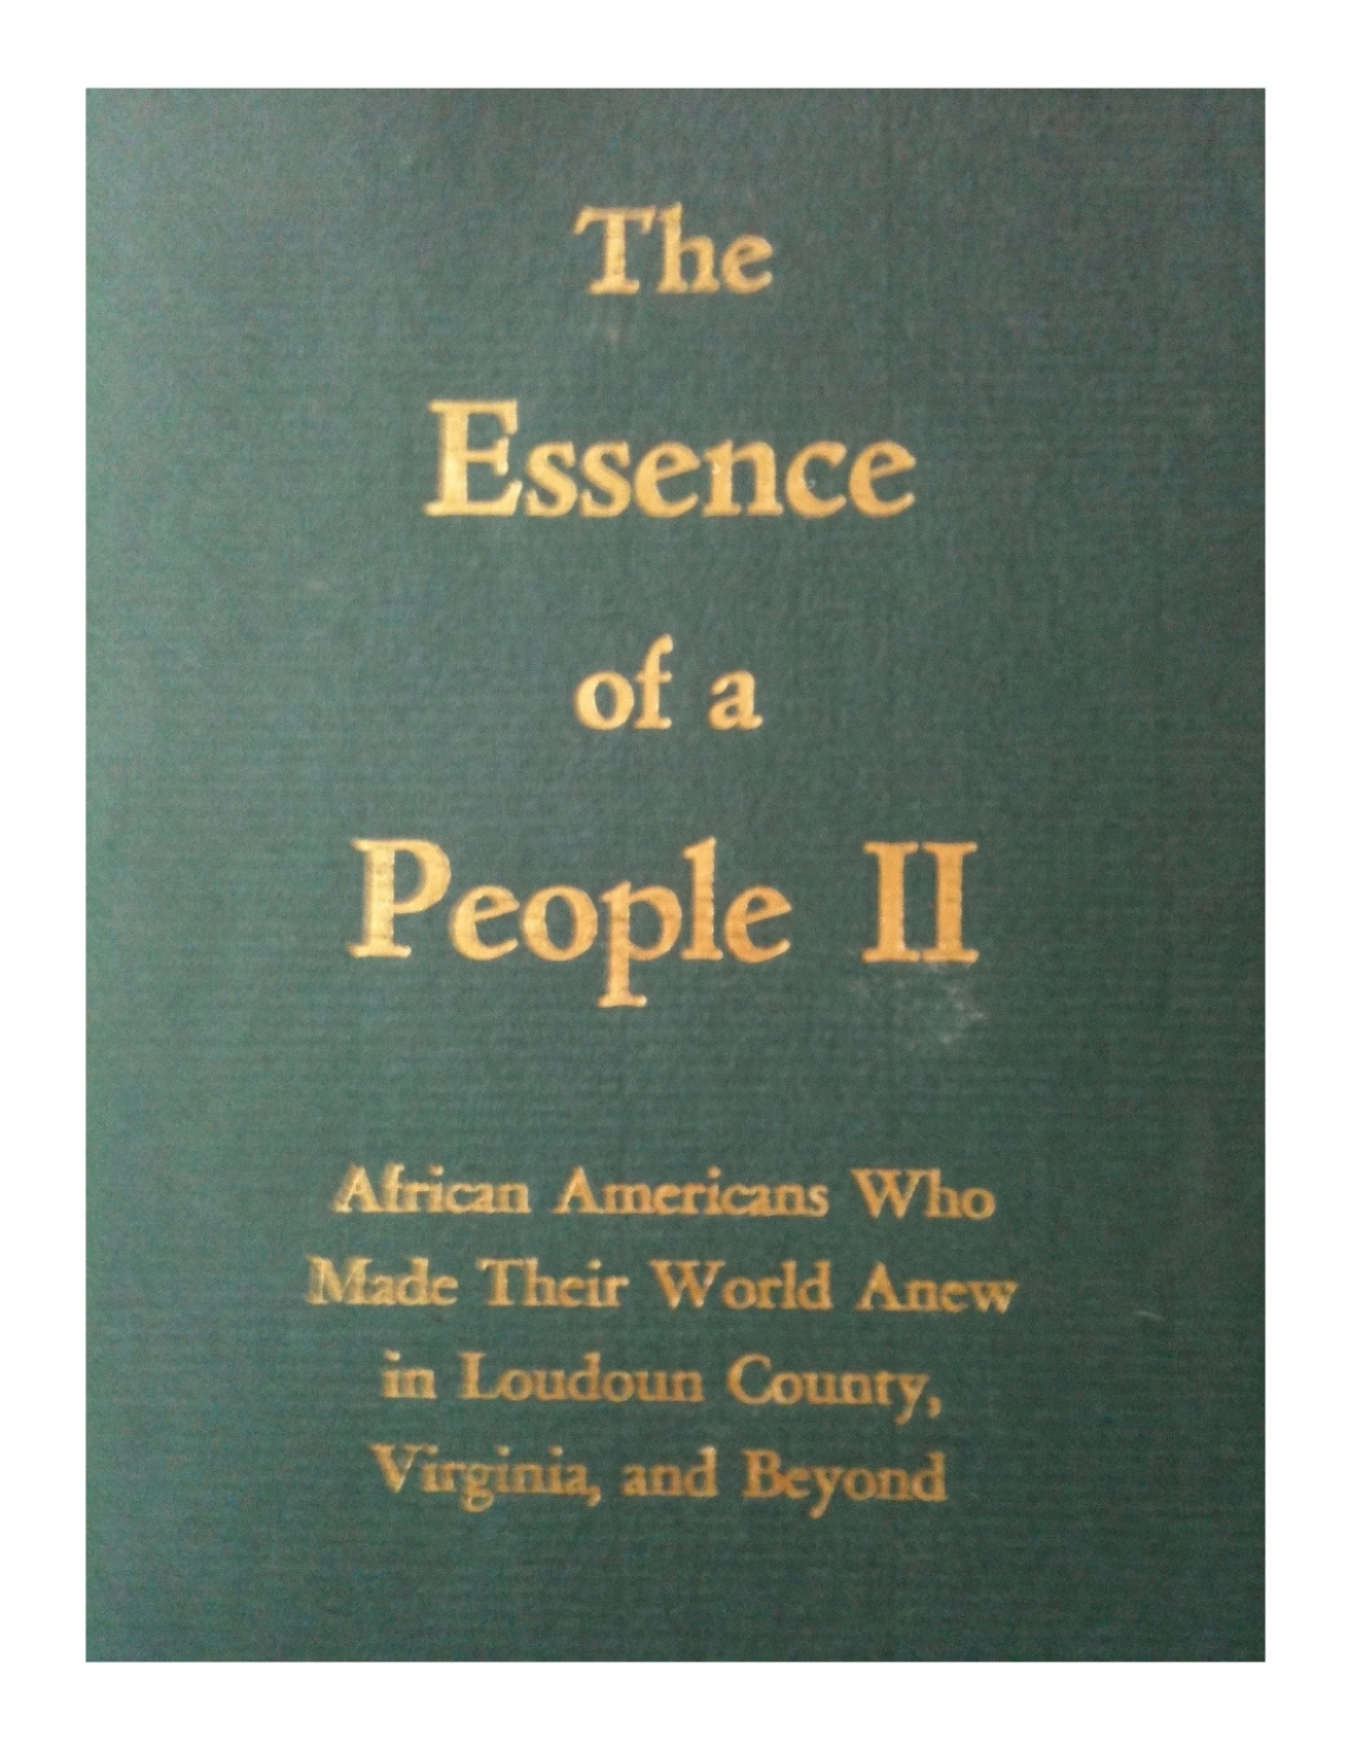 The Essence of a People II